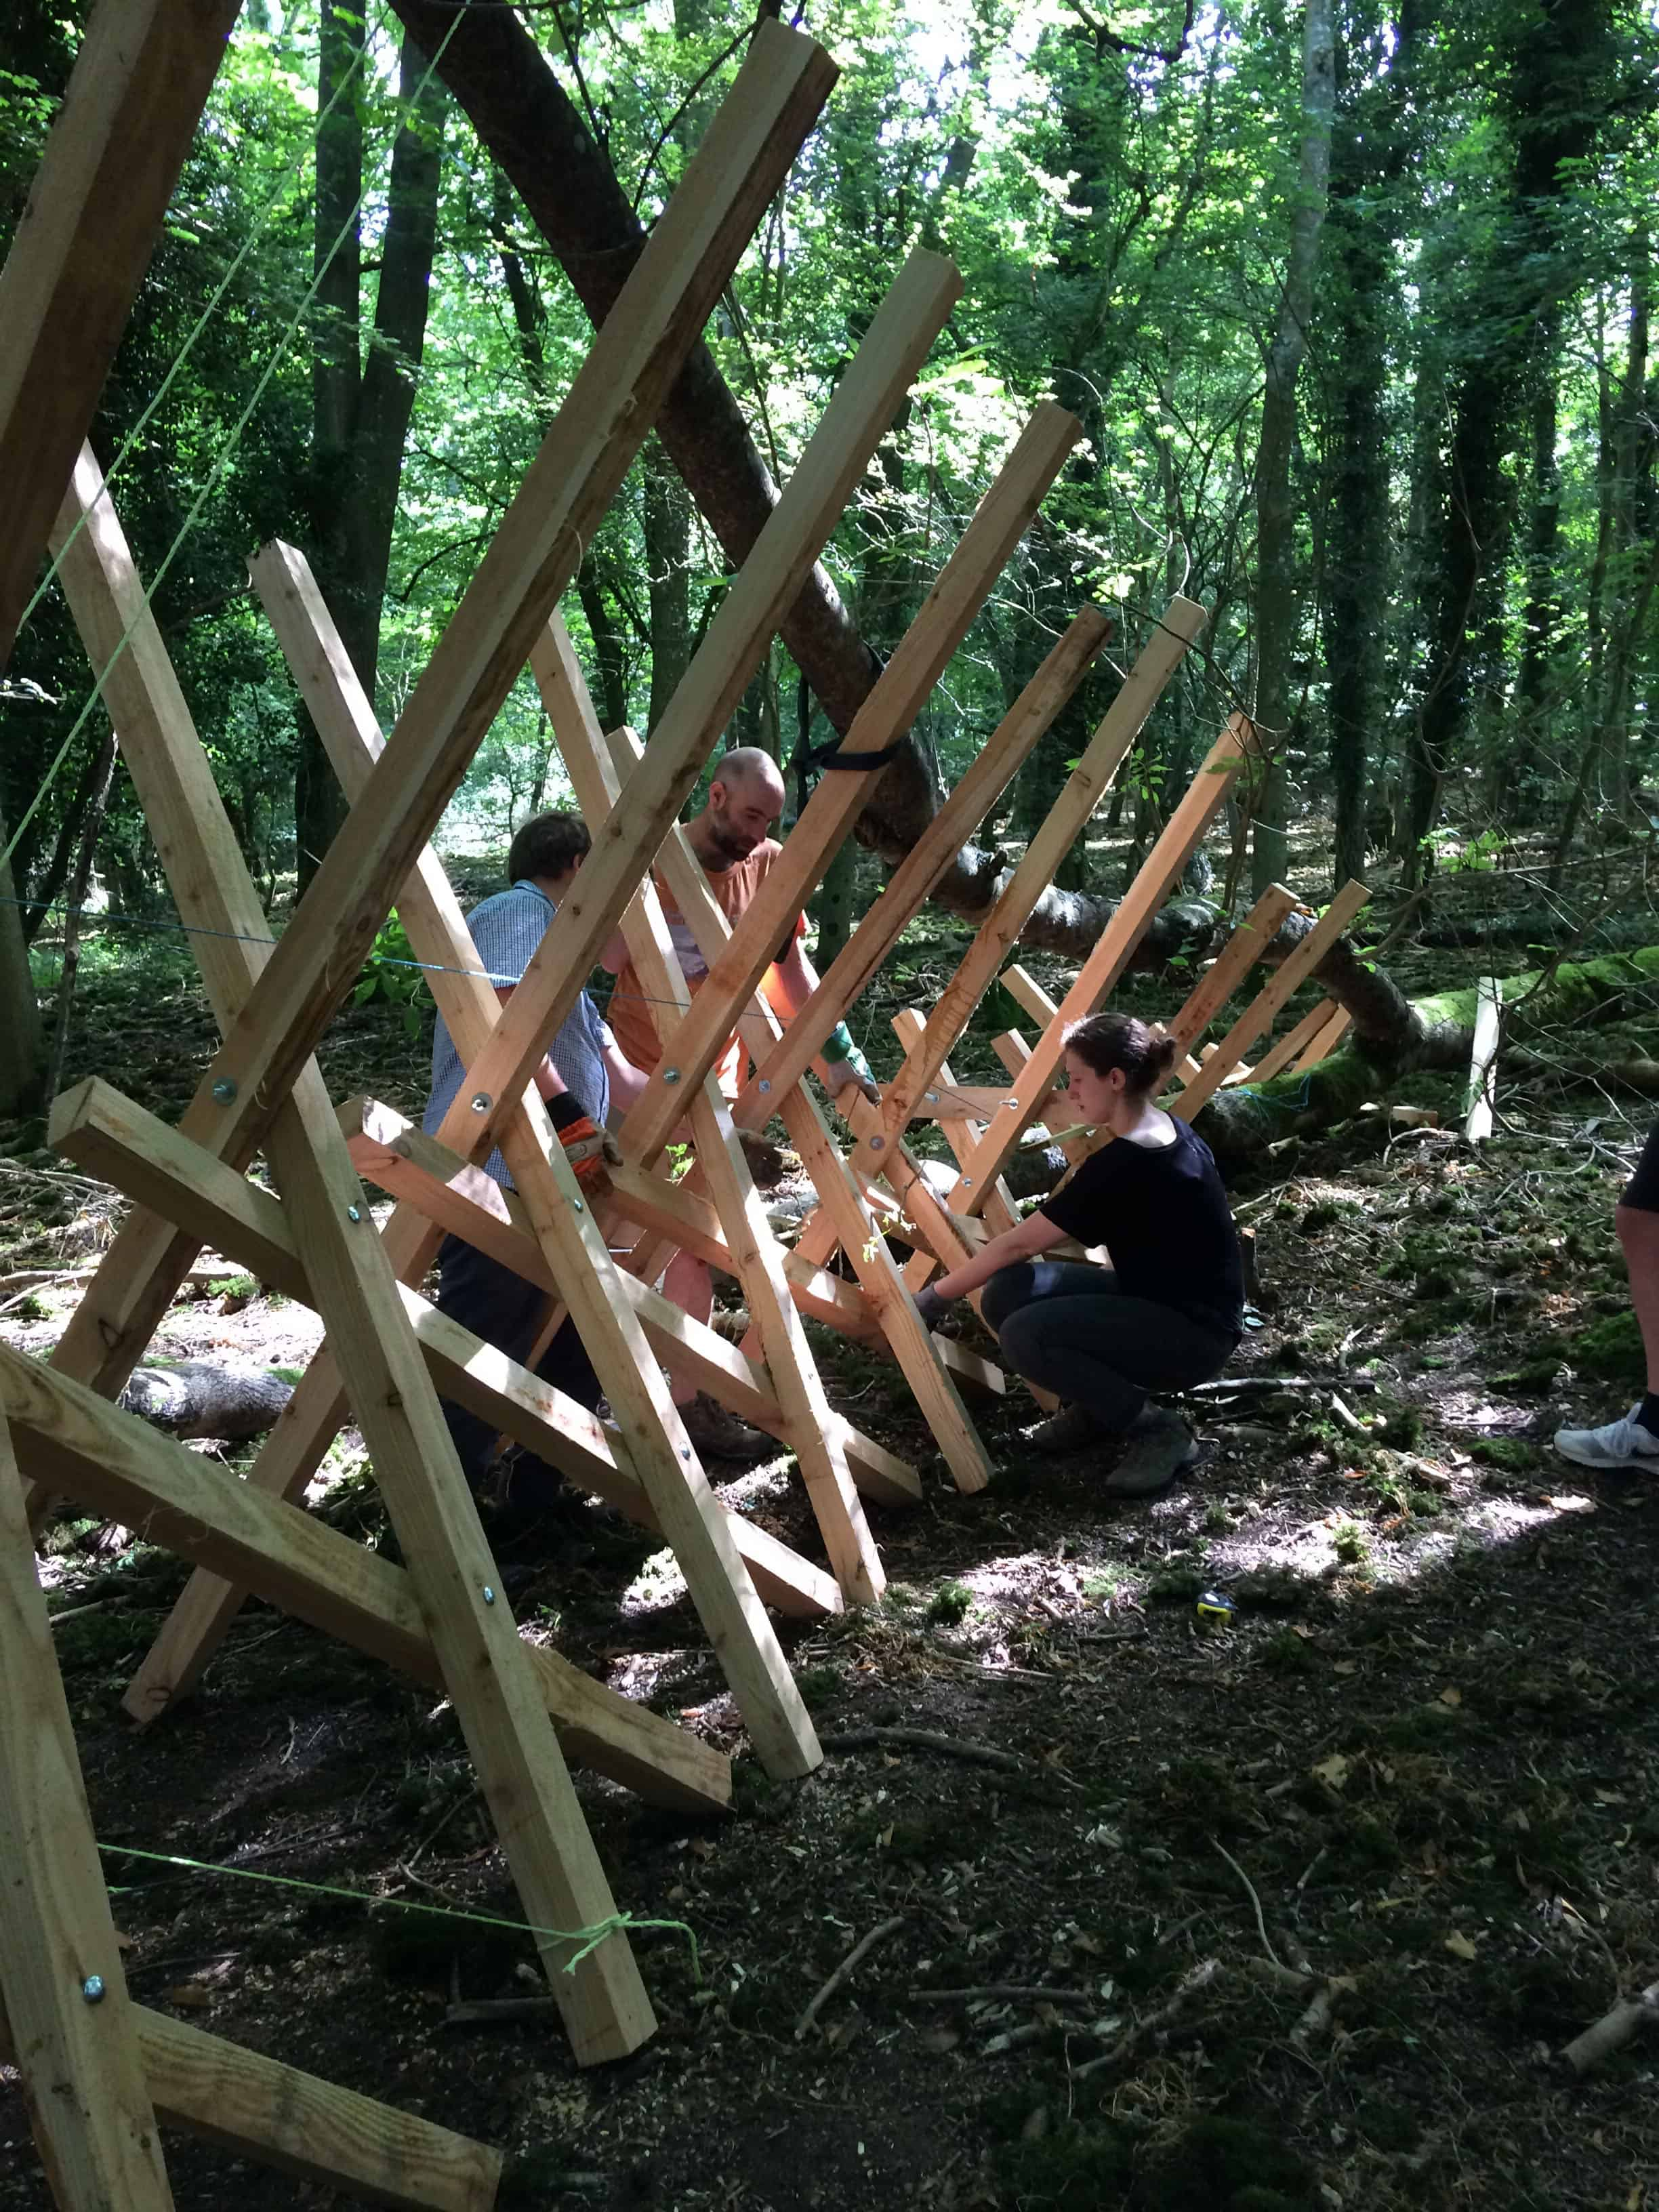 CNA team members get constructive in the woods!